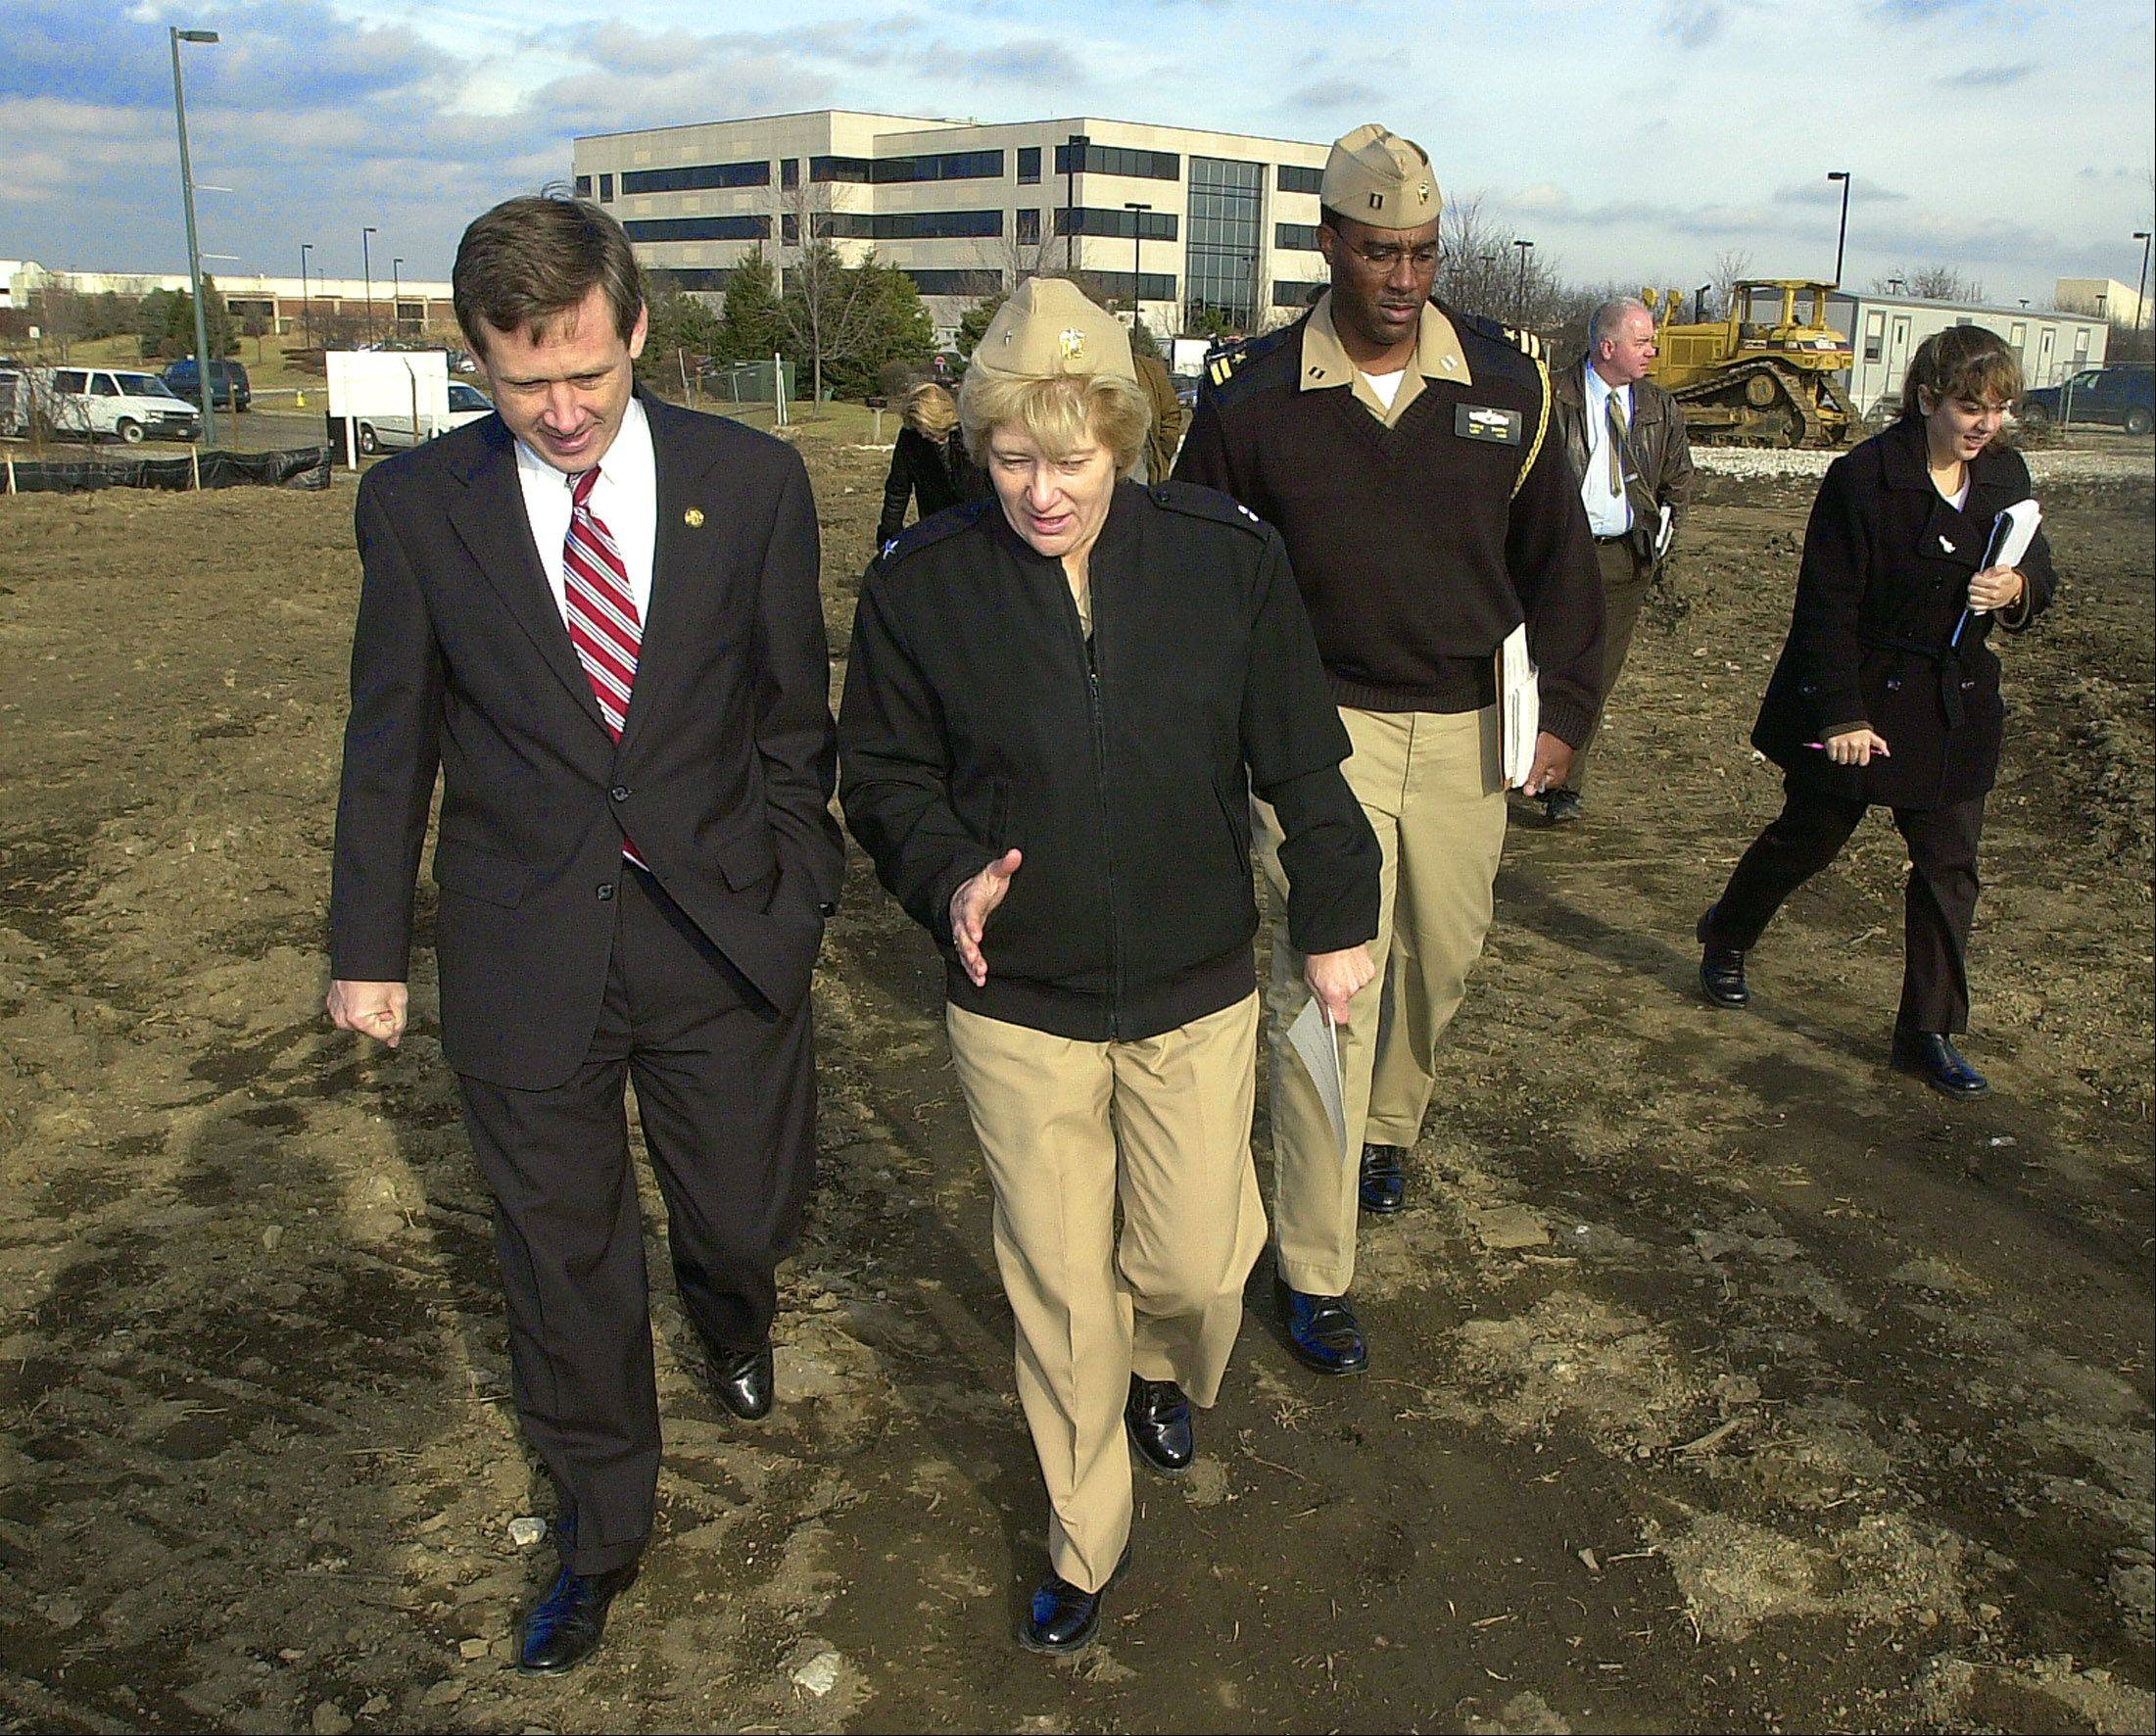 Congressman Mark Kirk and Rear Admiral Ann Rondeau of the Naval Nraining Center Great Lakes walk on the Nike base as they inspect an area that is scheduled for environmental clean up Vernon Hills.